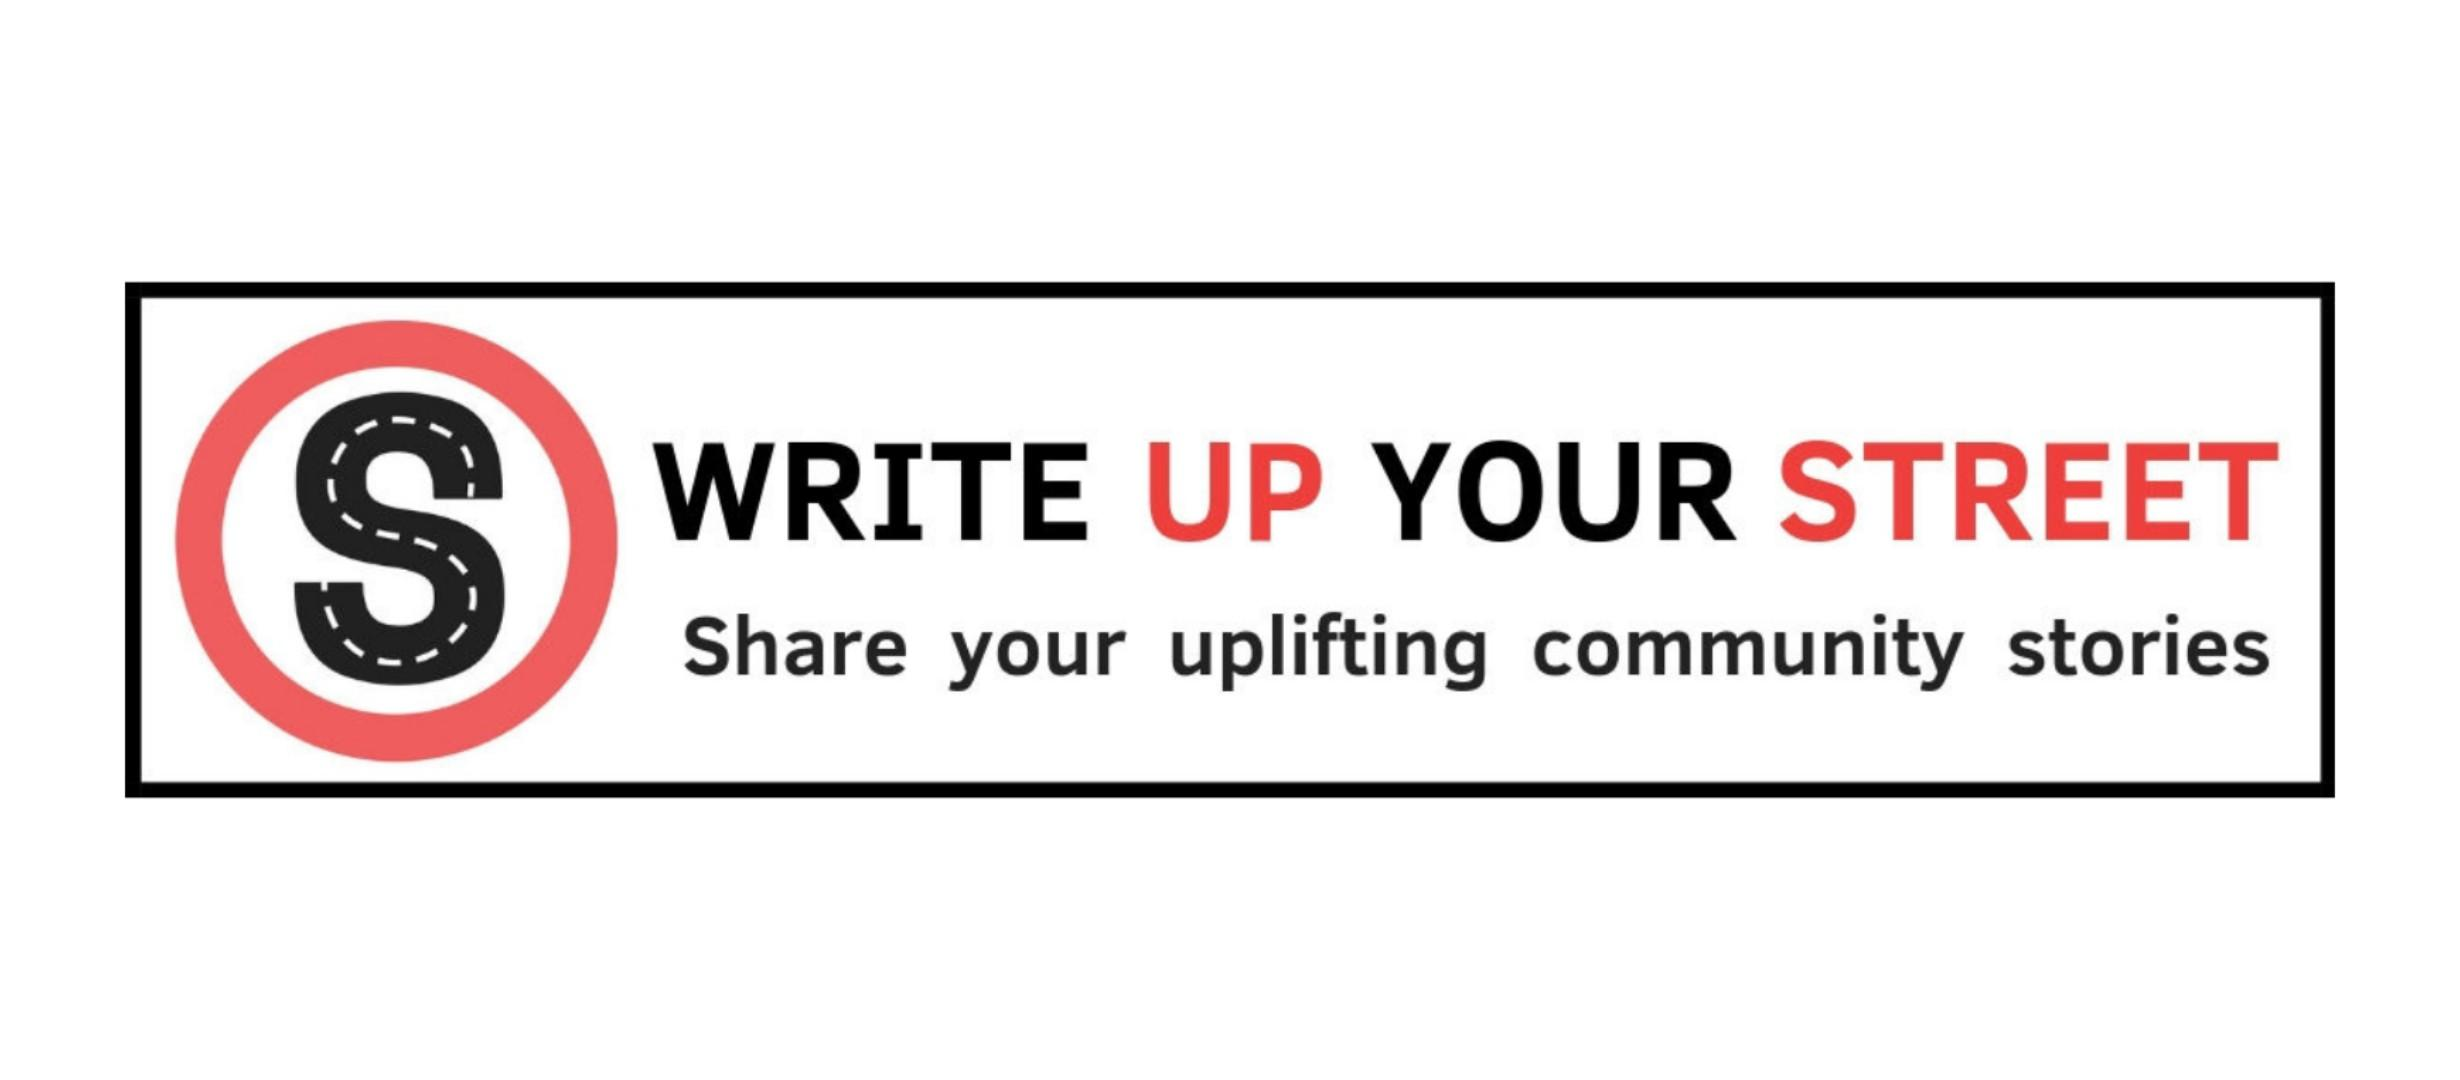 write up your street - share your uplifting community stories